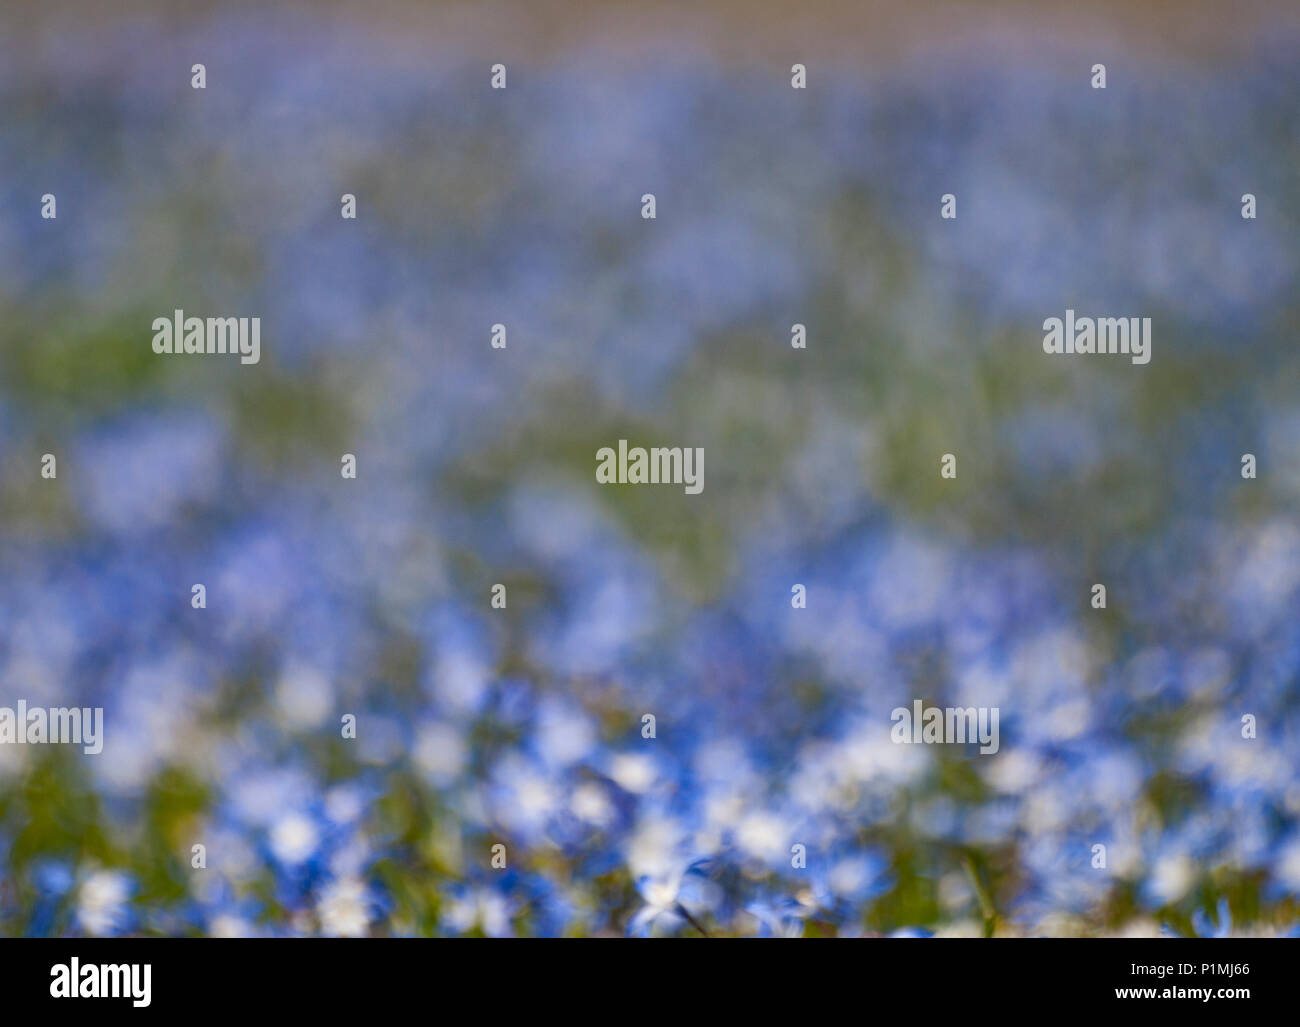 background blurred field of blue flowers stock photo 207592398 alamy